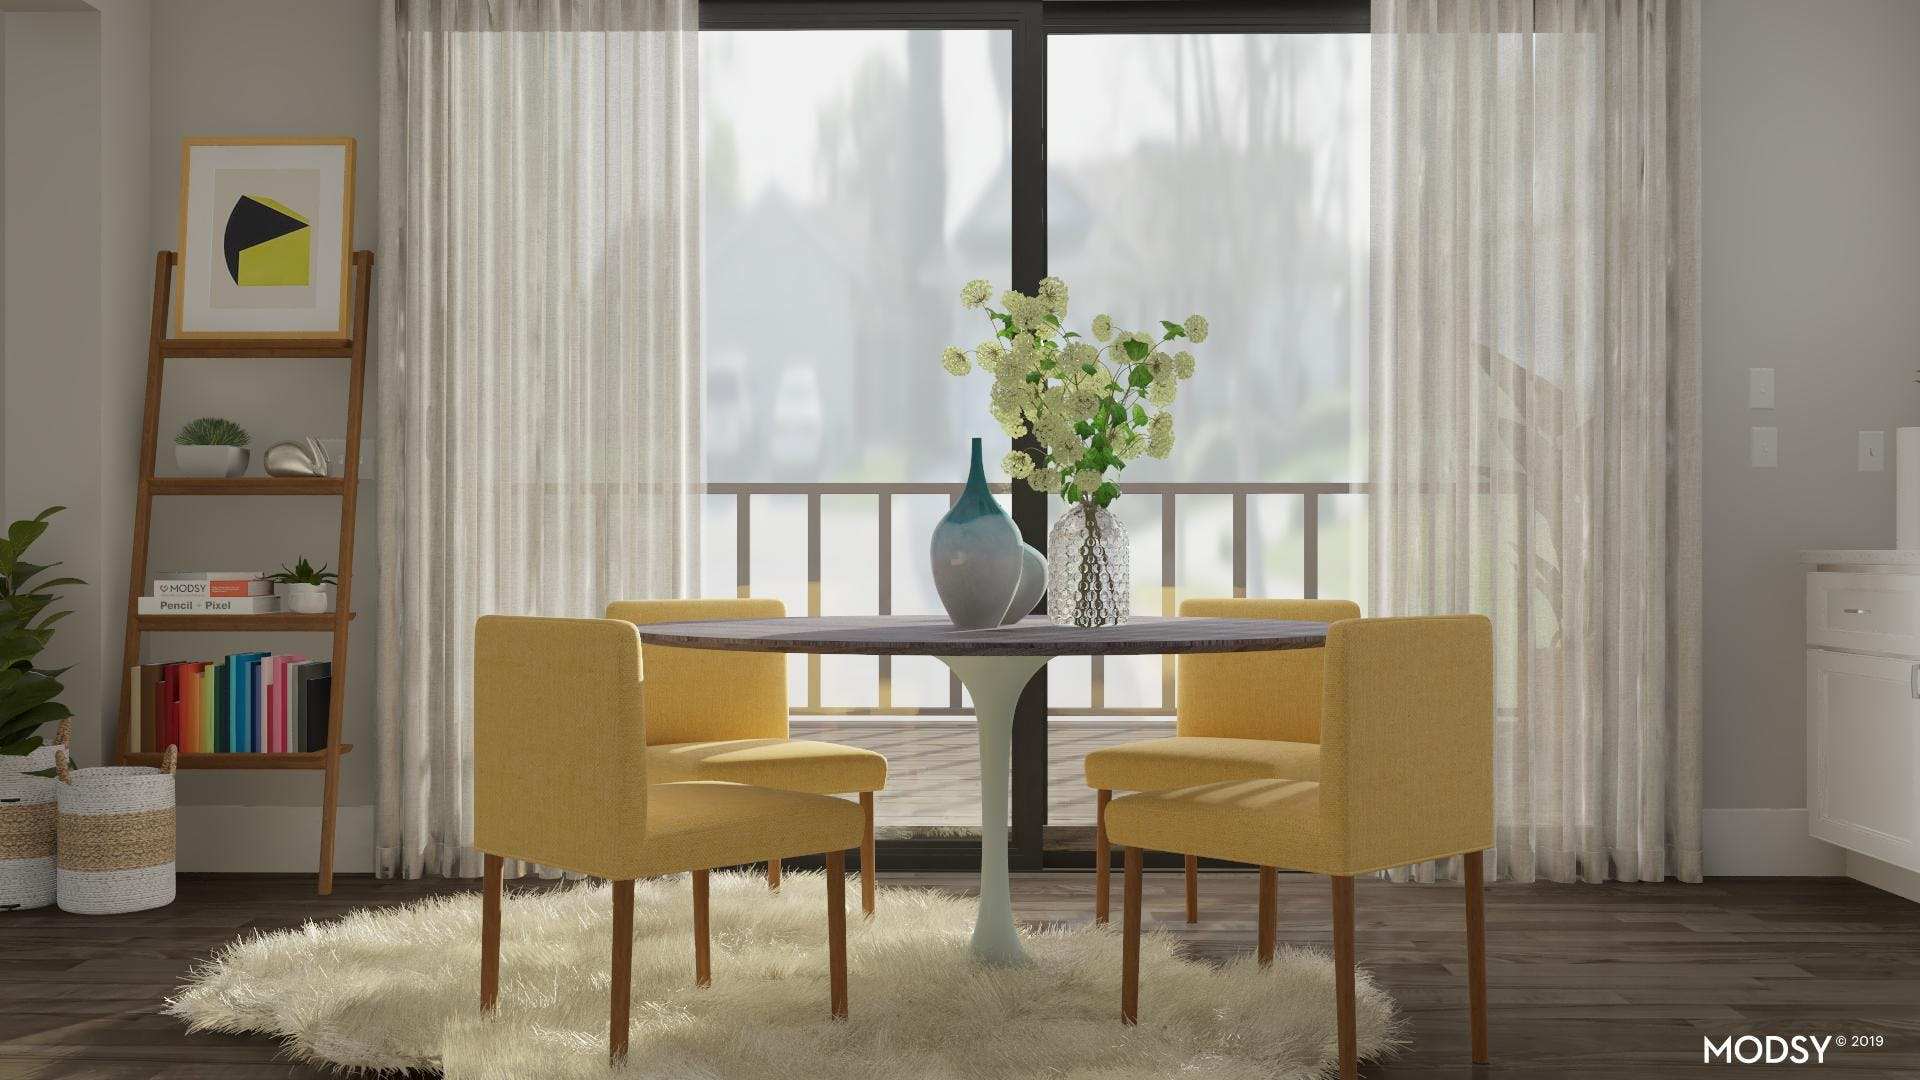 A Chic Dining Room Touch